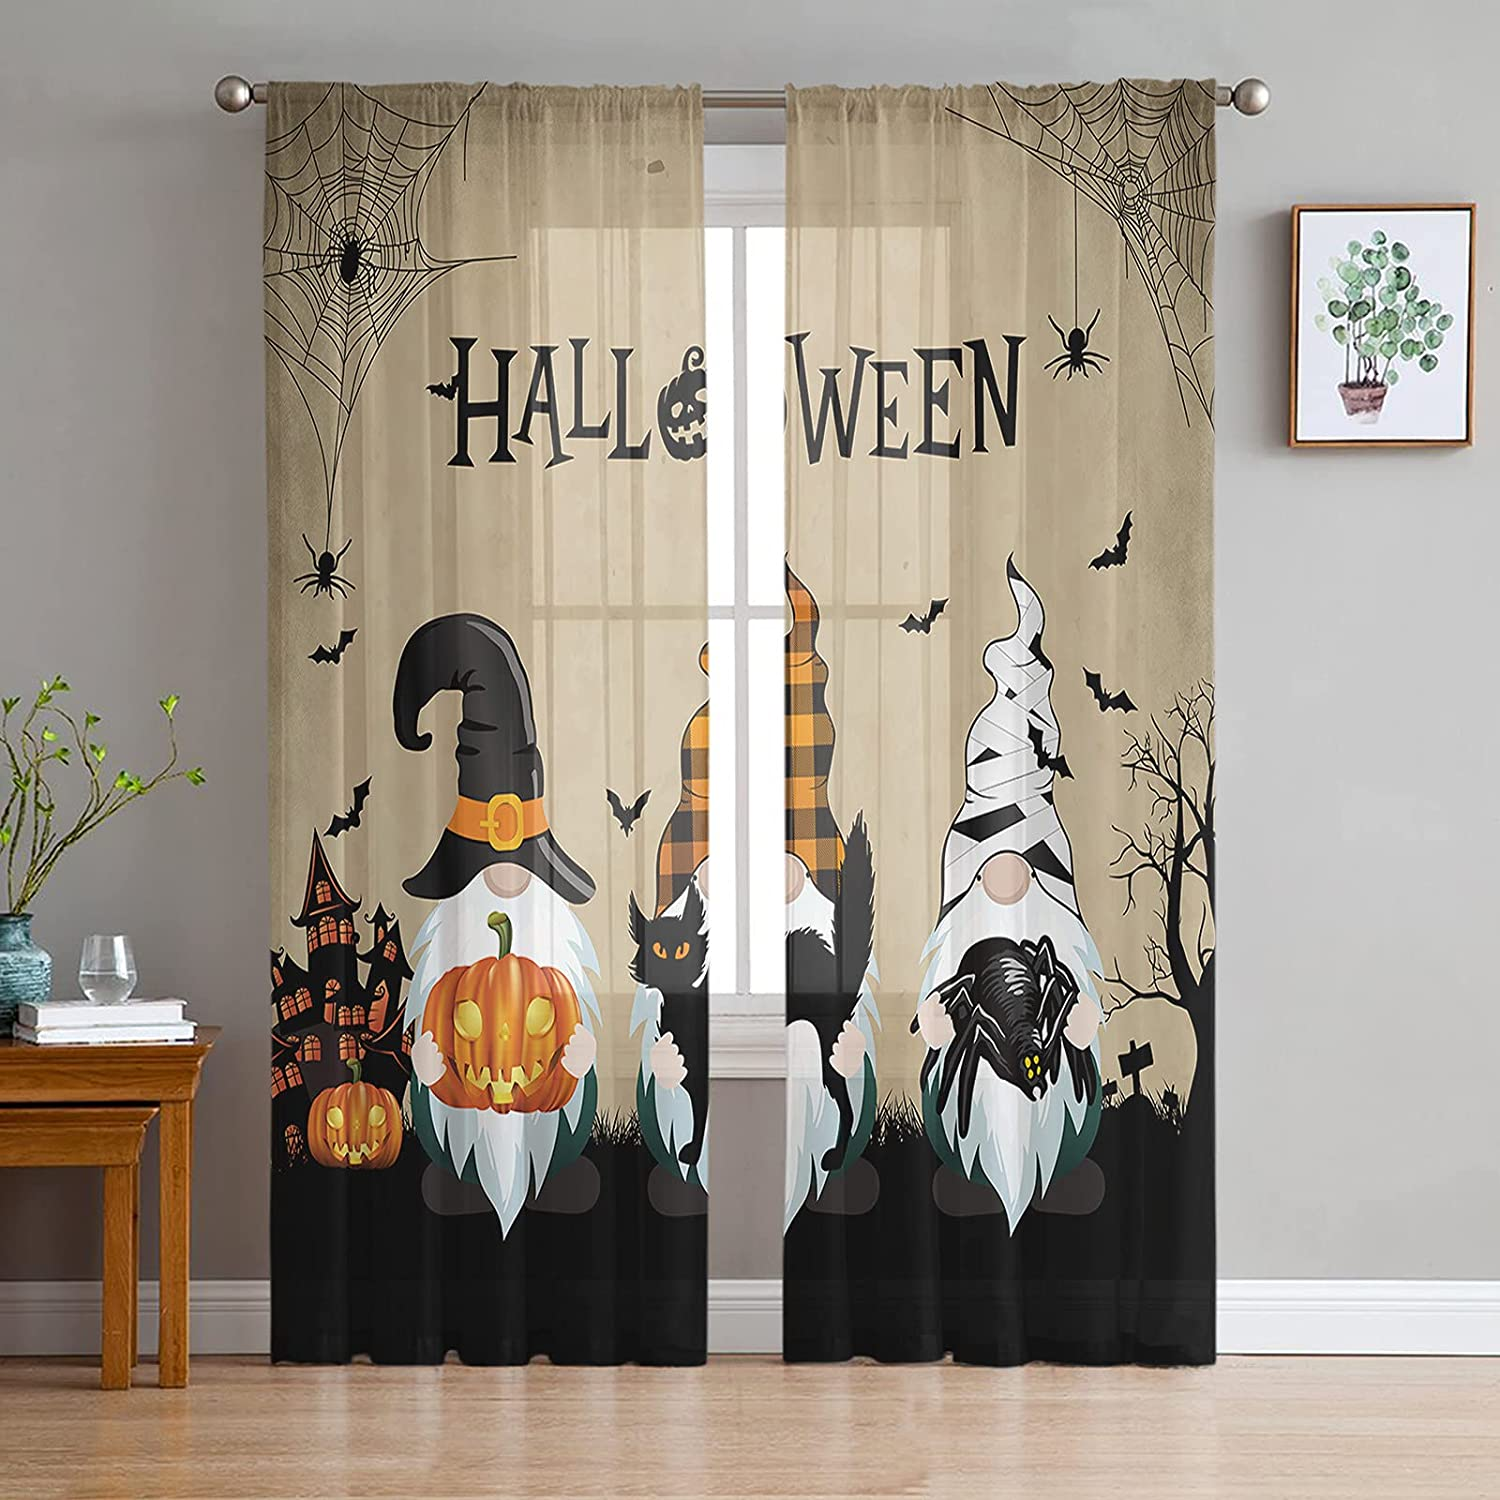 2 Panels Sheer Ranking TOP3 Window Curtains Filtering Light Gnomes Safety and trust Halloween